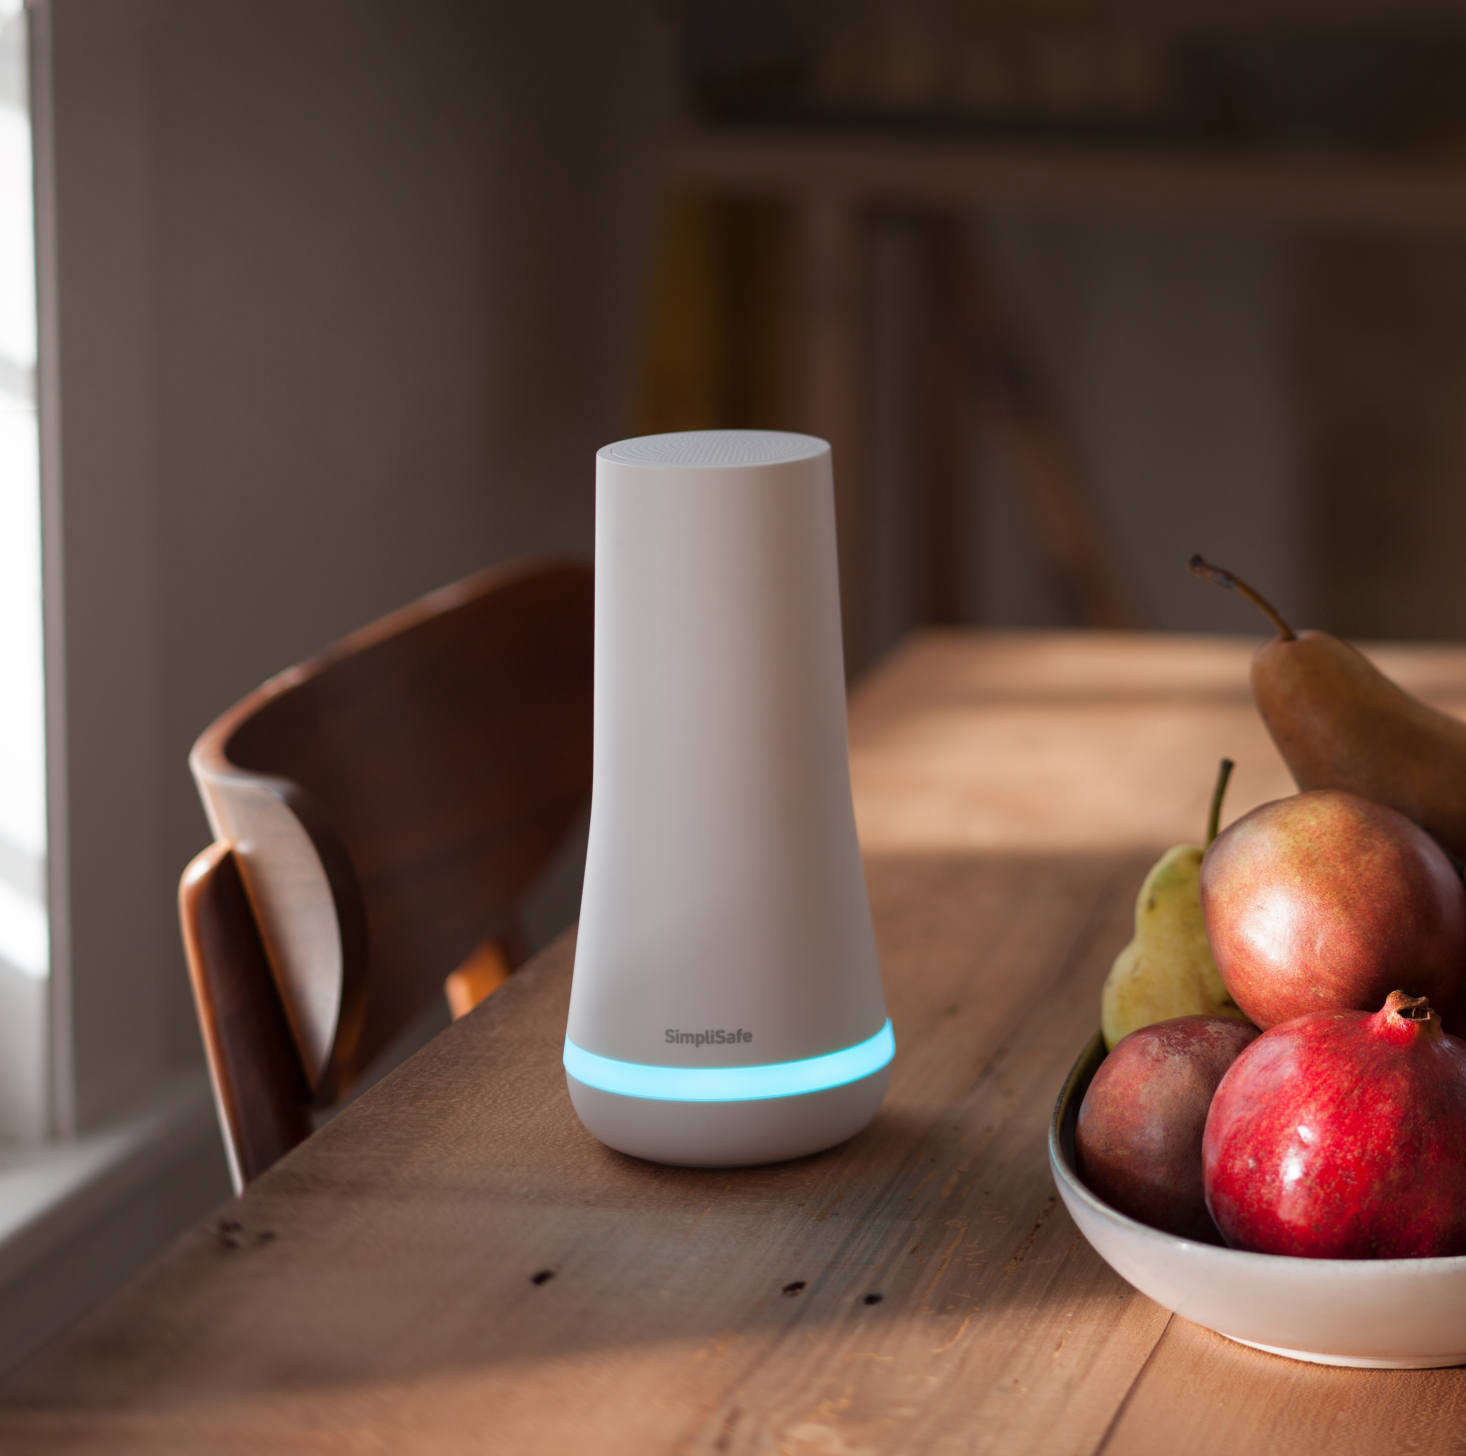 All SimpliSafe systems come with a base station (shown). The sensors and keypad communicate with the base station. If someone tries to break in, your base station alerts SimpliSafe's monitoring center, then sounds a loud siren.